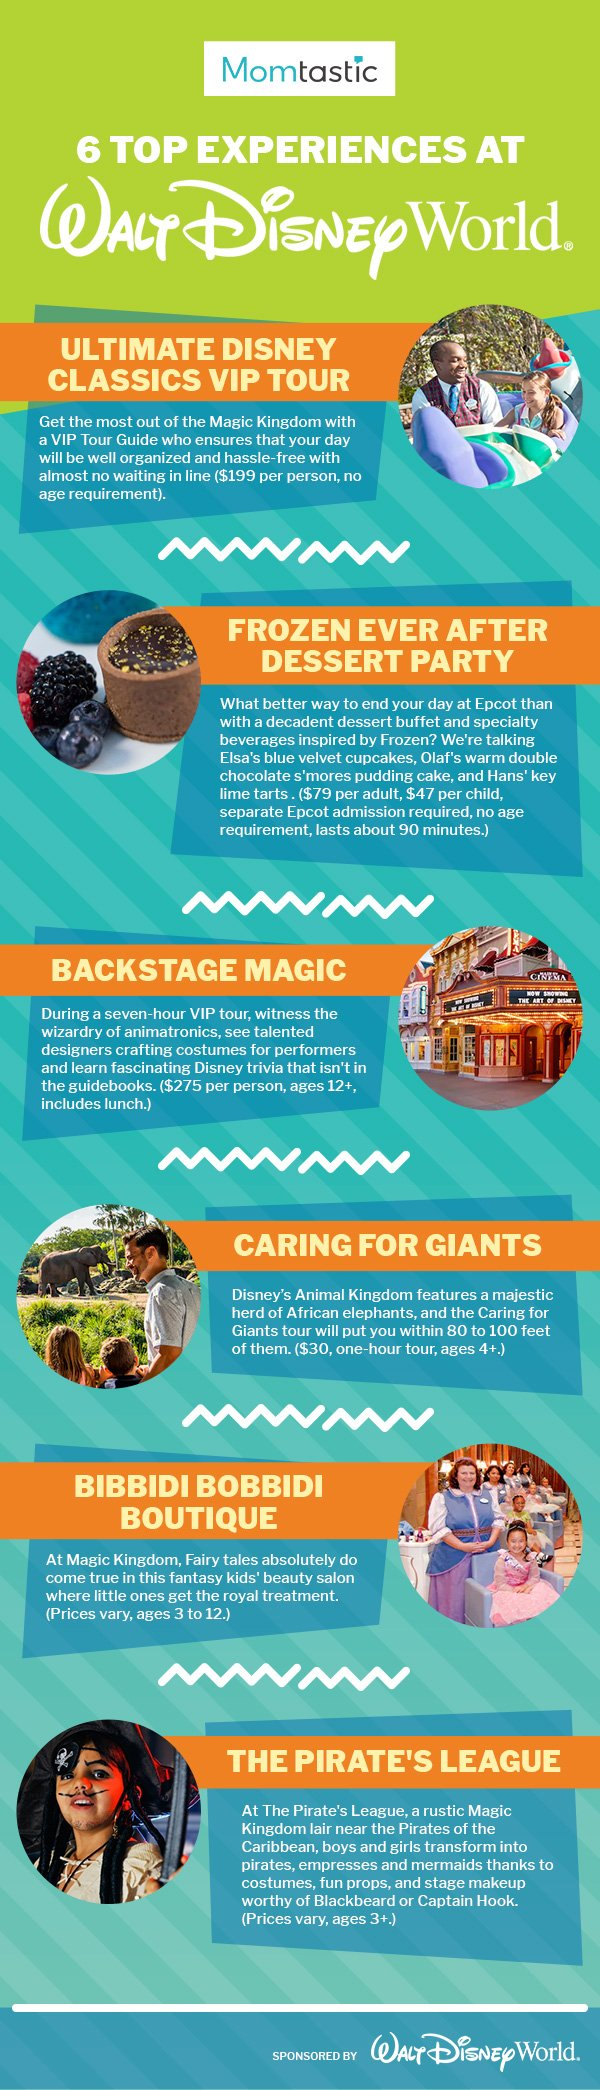 6 Top Walt Disney World Experiences You Never Knew You Could Have Until Now